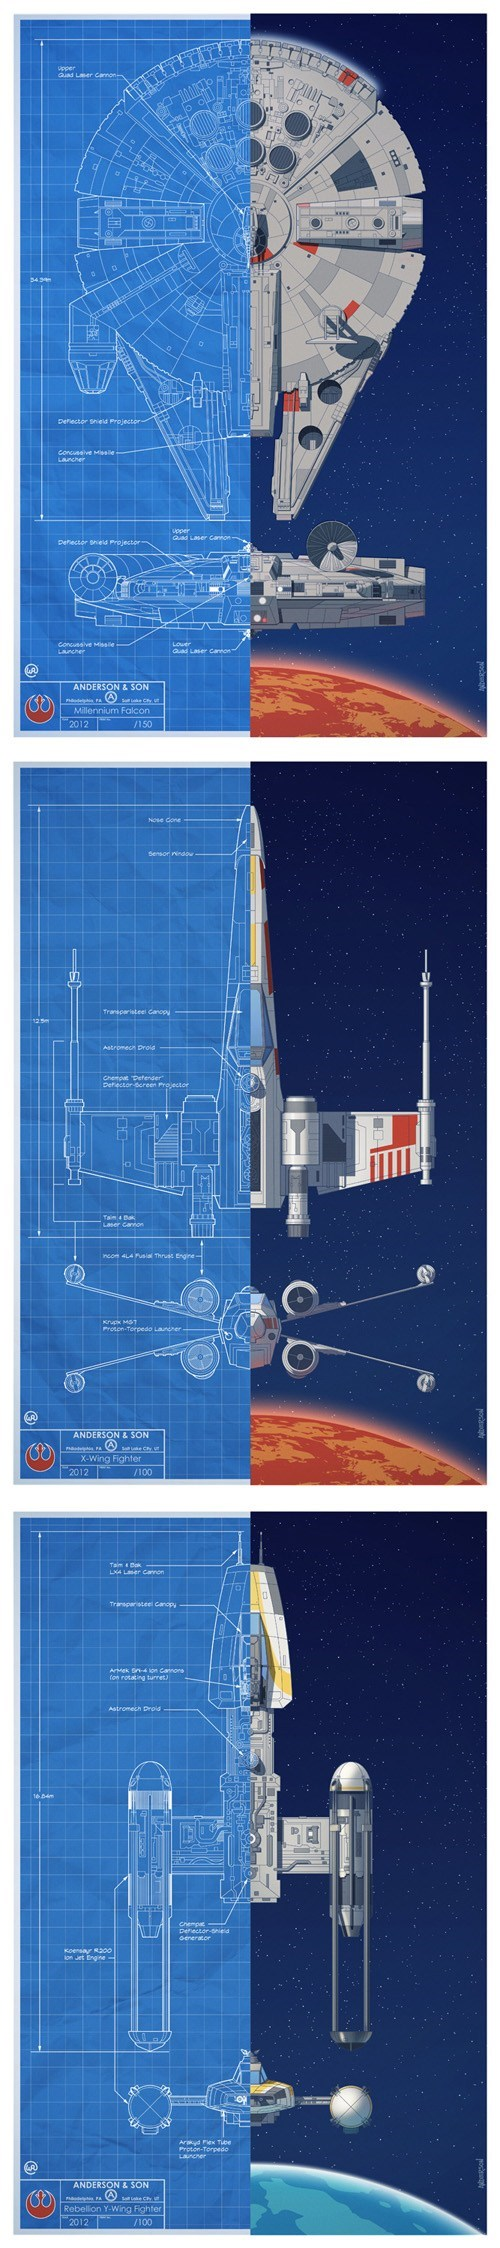 Y-Wing,Millenium Falcon,rebels,star wars,posters,Fan Art,X-Wing Fighter,space ships